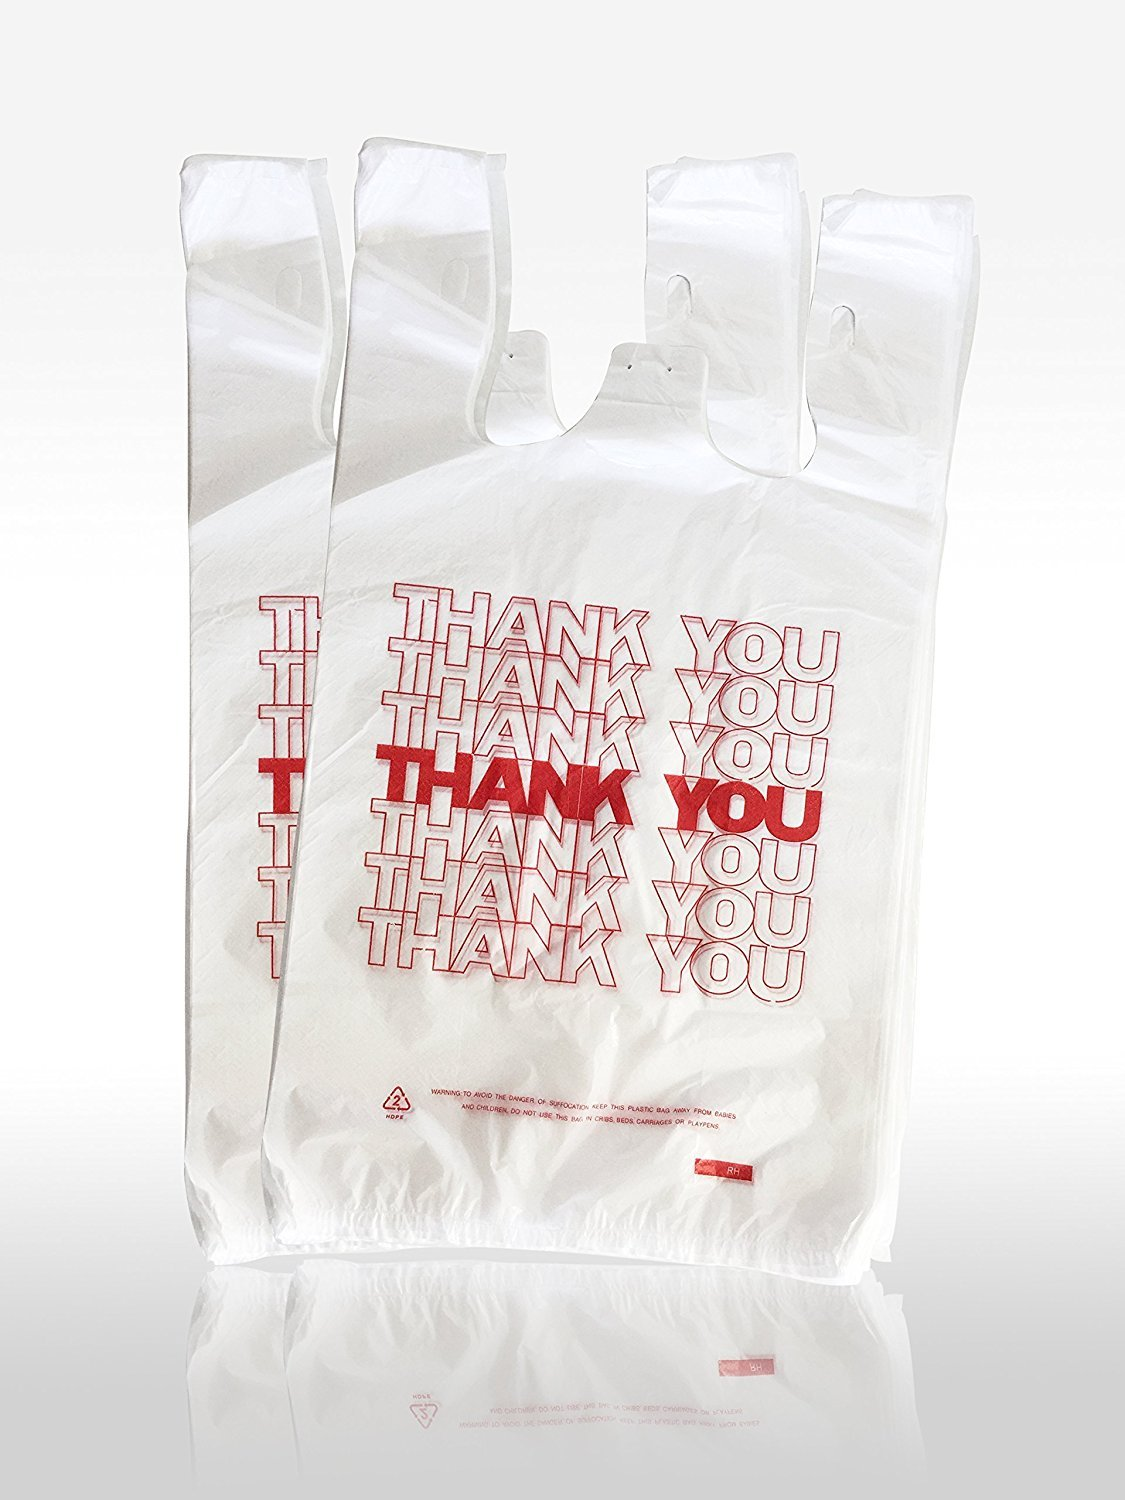 Black t shirt carryout bags 1000 ct - Amazon Com T Shirt Carryout Bags Thank You Bags Reusable Grocery Plastic Bags 300 Count Kitchen Dining